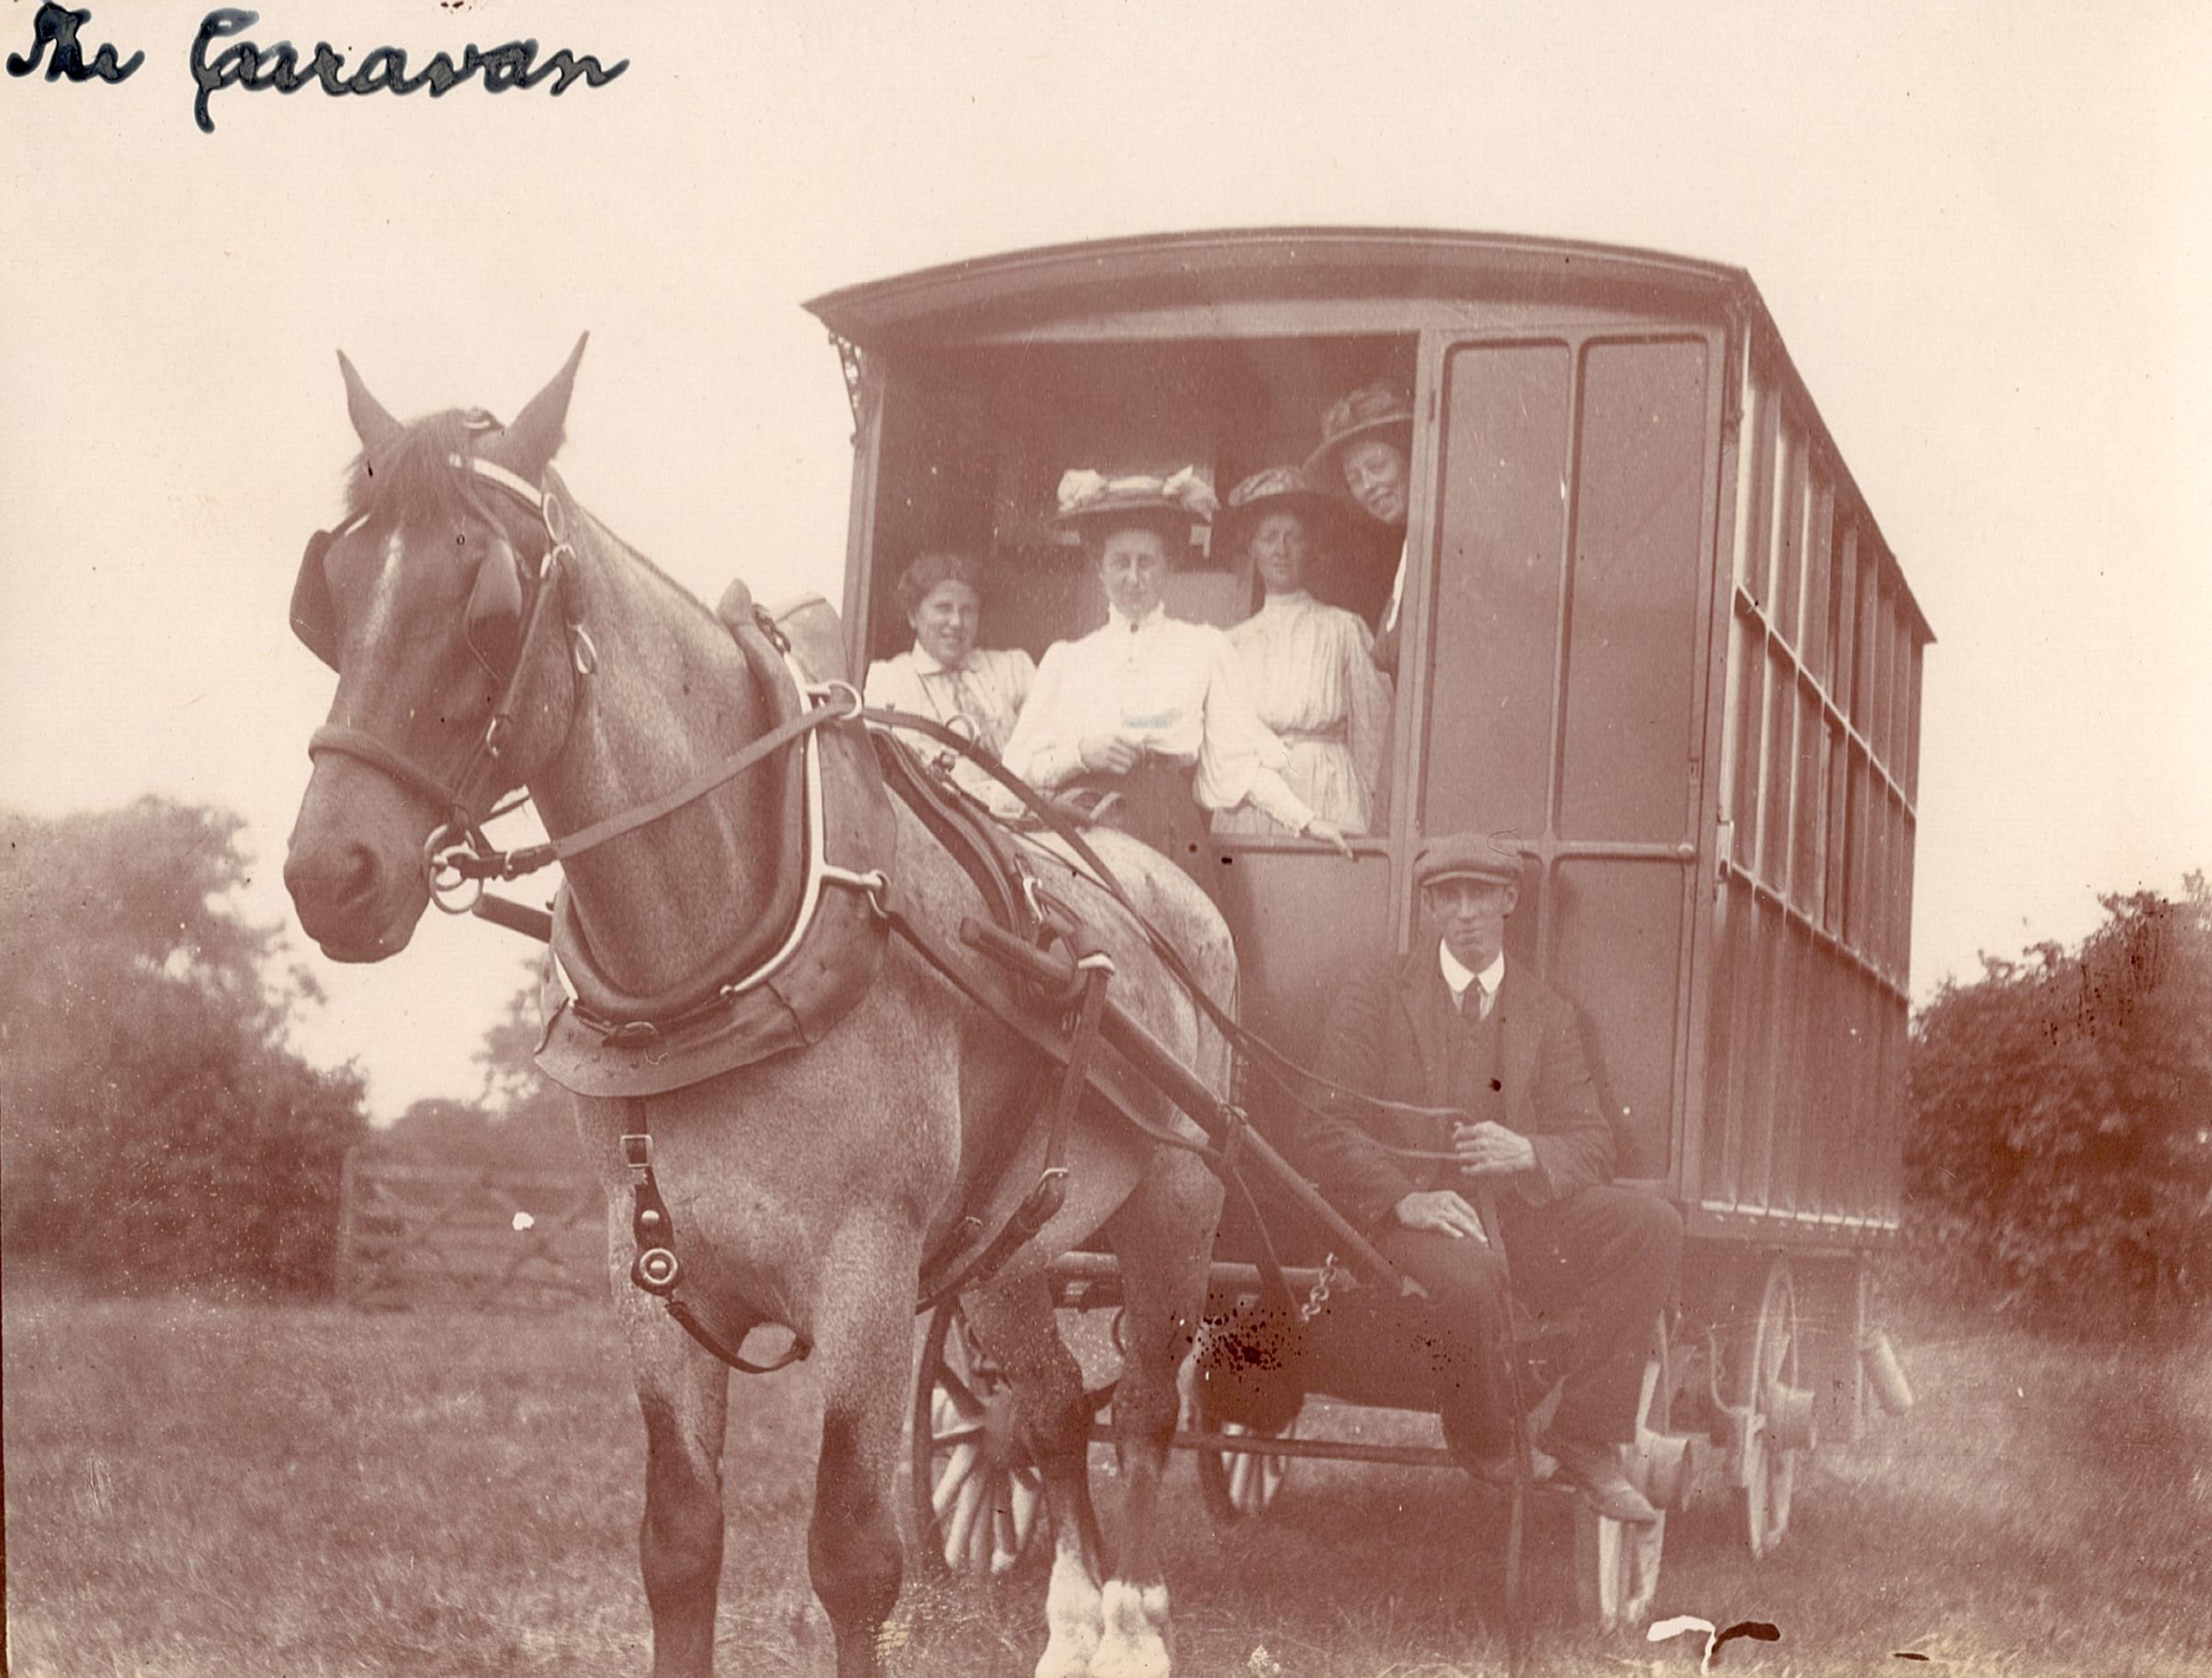 Women seated in the cab of a horse-drawn caravan.